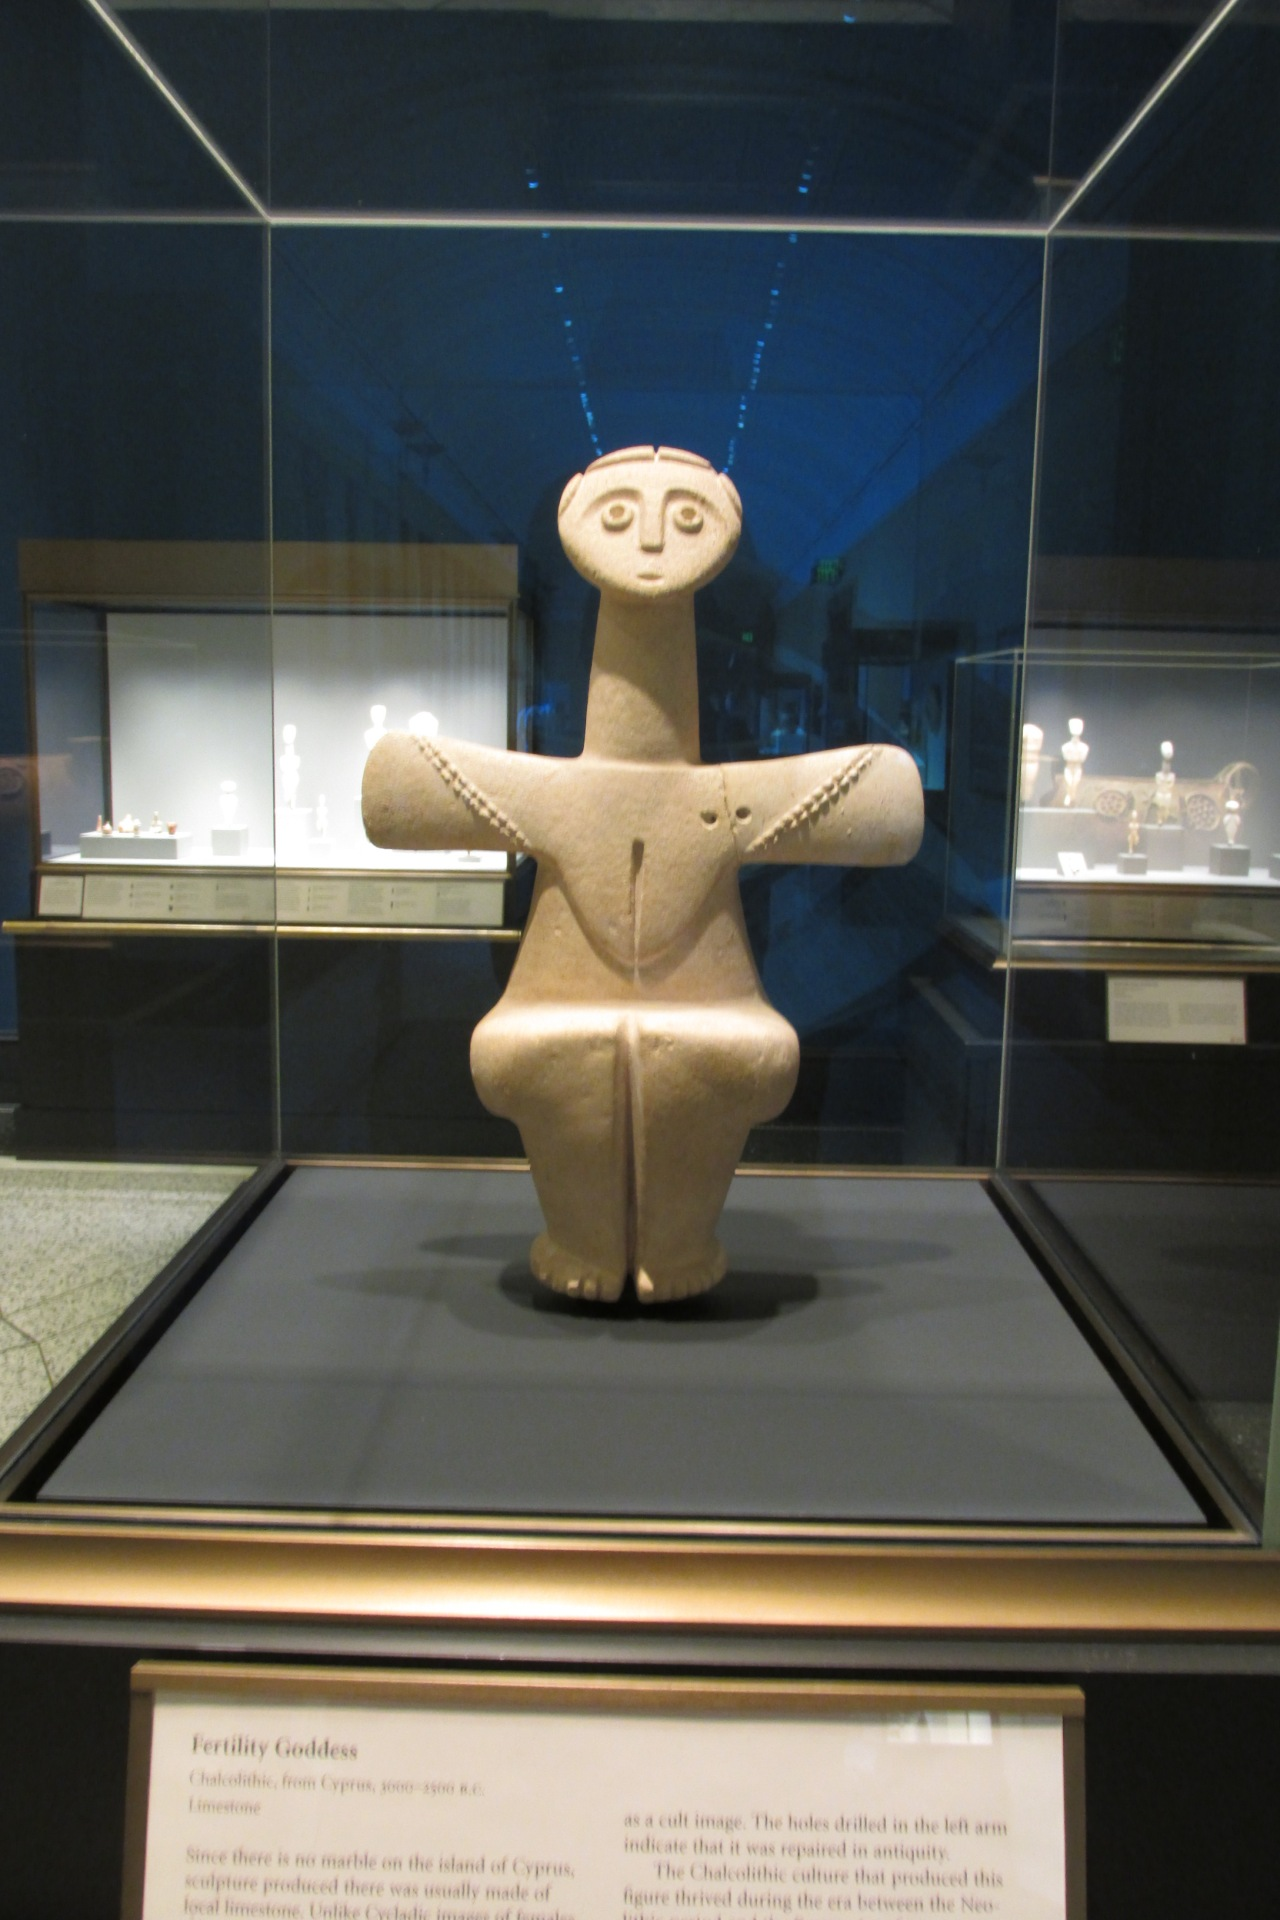 The Fertility Goddess of the Cycladic Age.